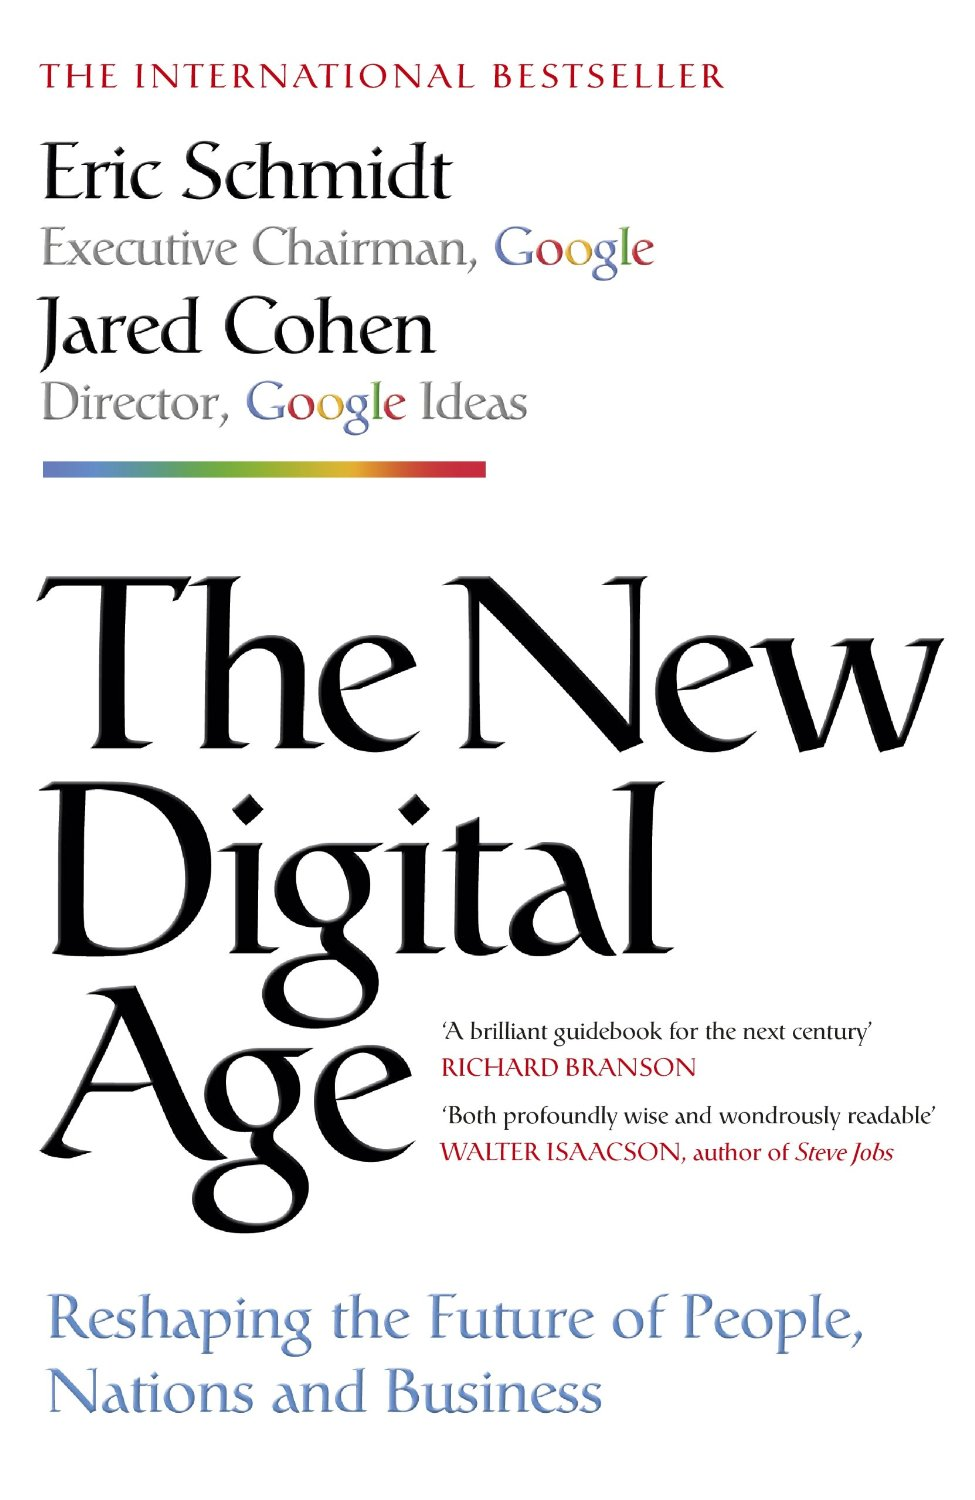 Eric Schmidt & Jared Cohen: The New Digital Age. Reshaping the Future of People, Nations and Business. Knopf 2013, 336 sivua.